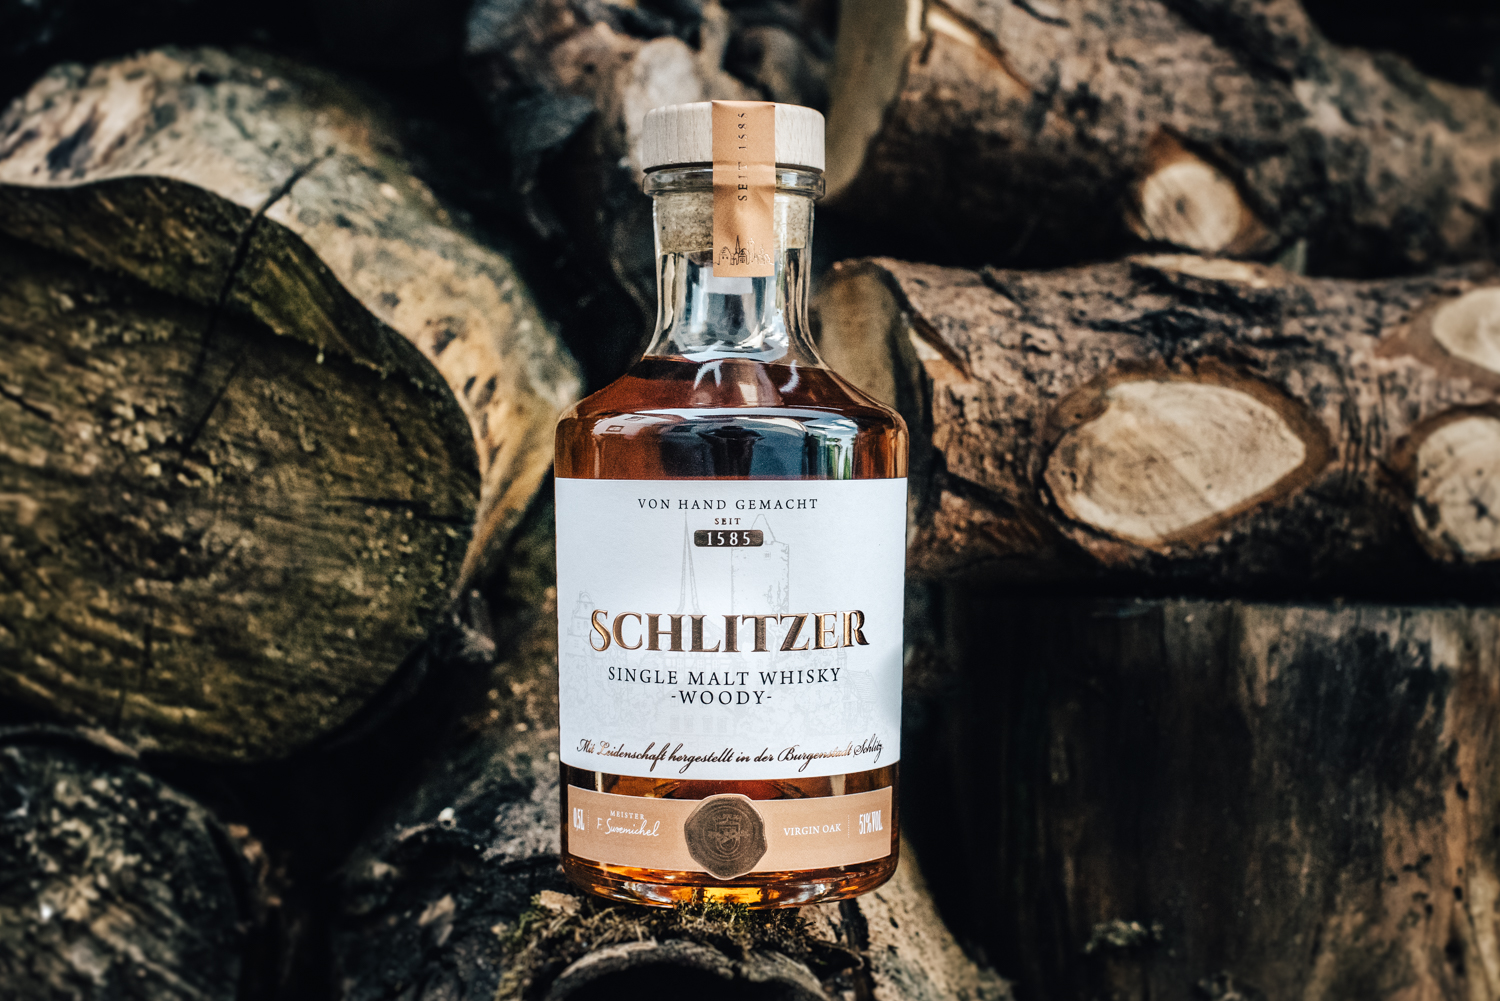 You are currently viewing Schlitzer Woody Single Malt Whisky